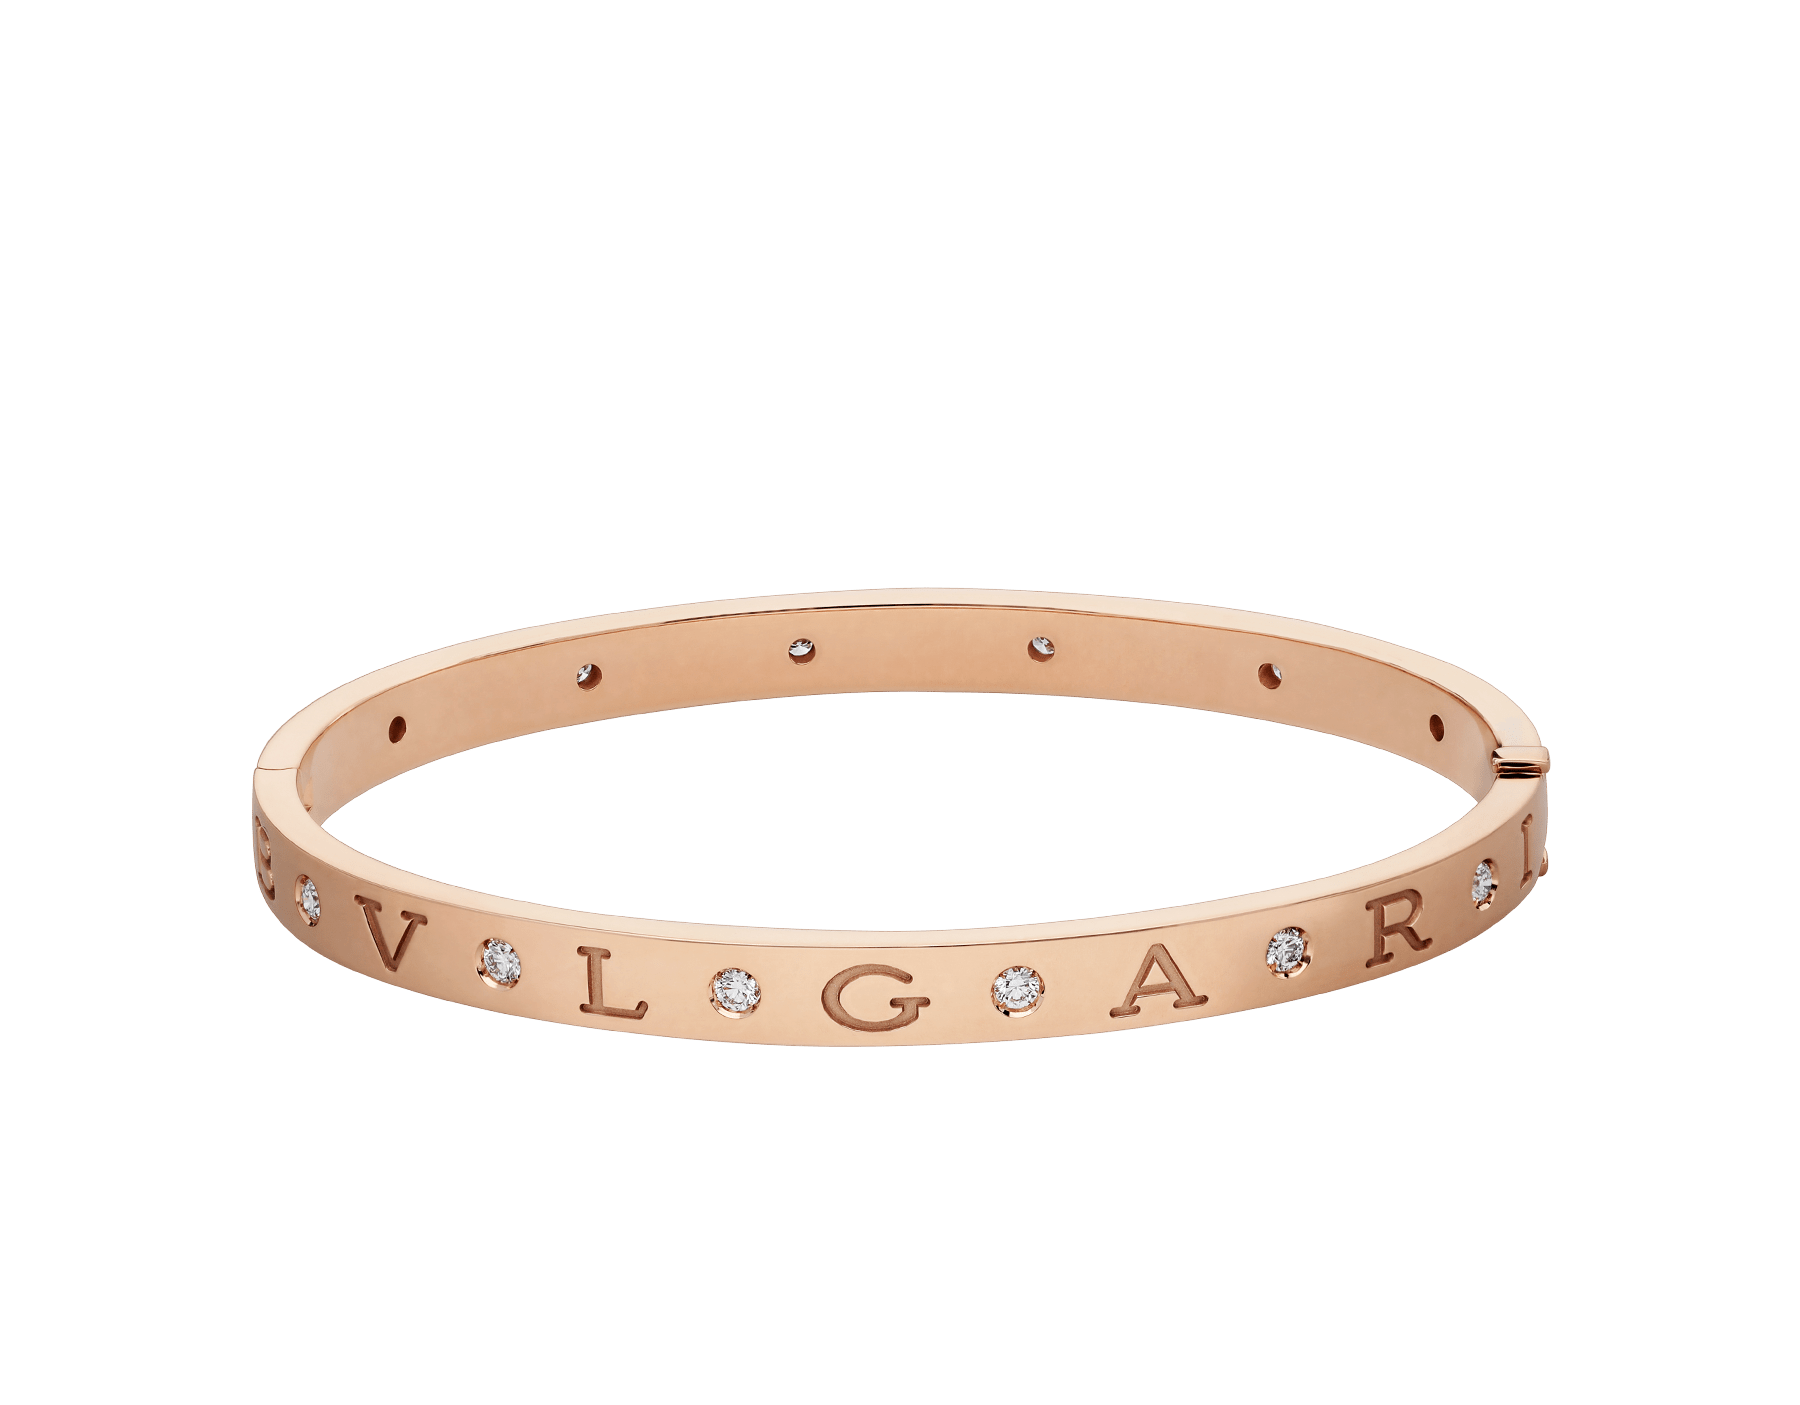 BVLGARI BVLGARI 18 kt rose gold bangle bracelet set with twelve diamonds. BR858007 image 2